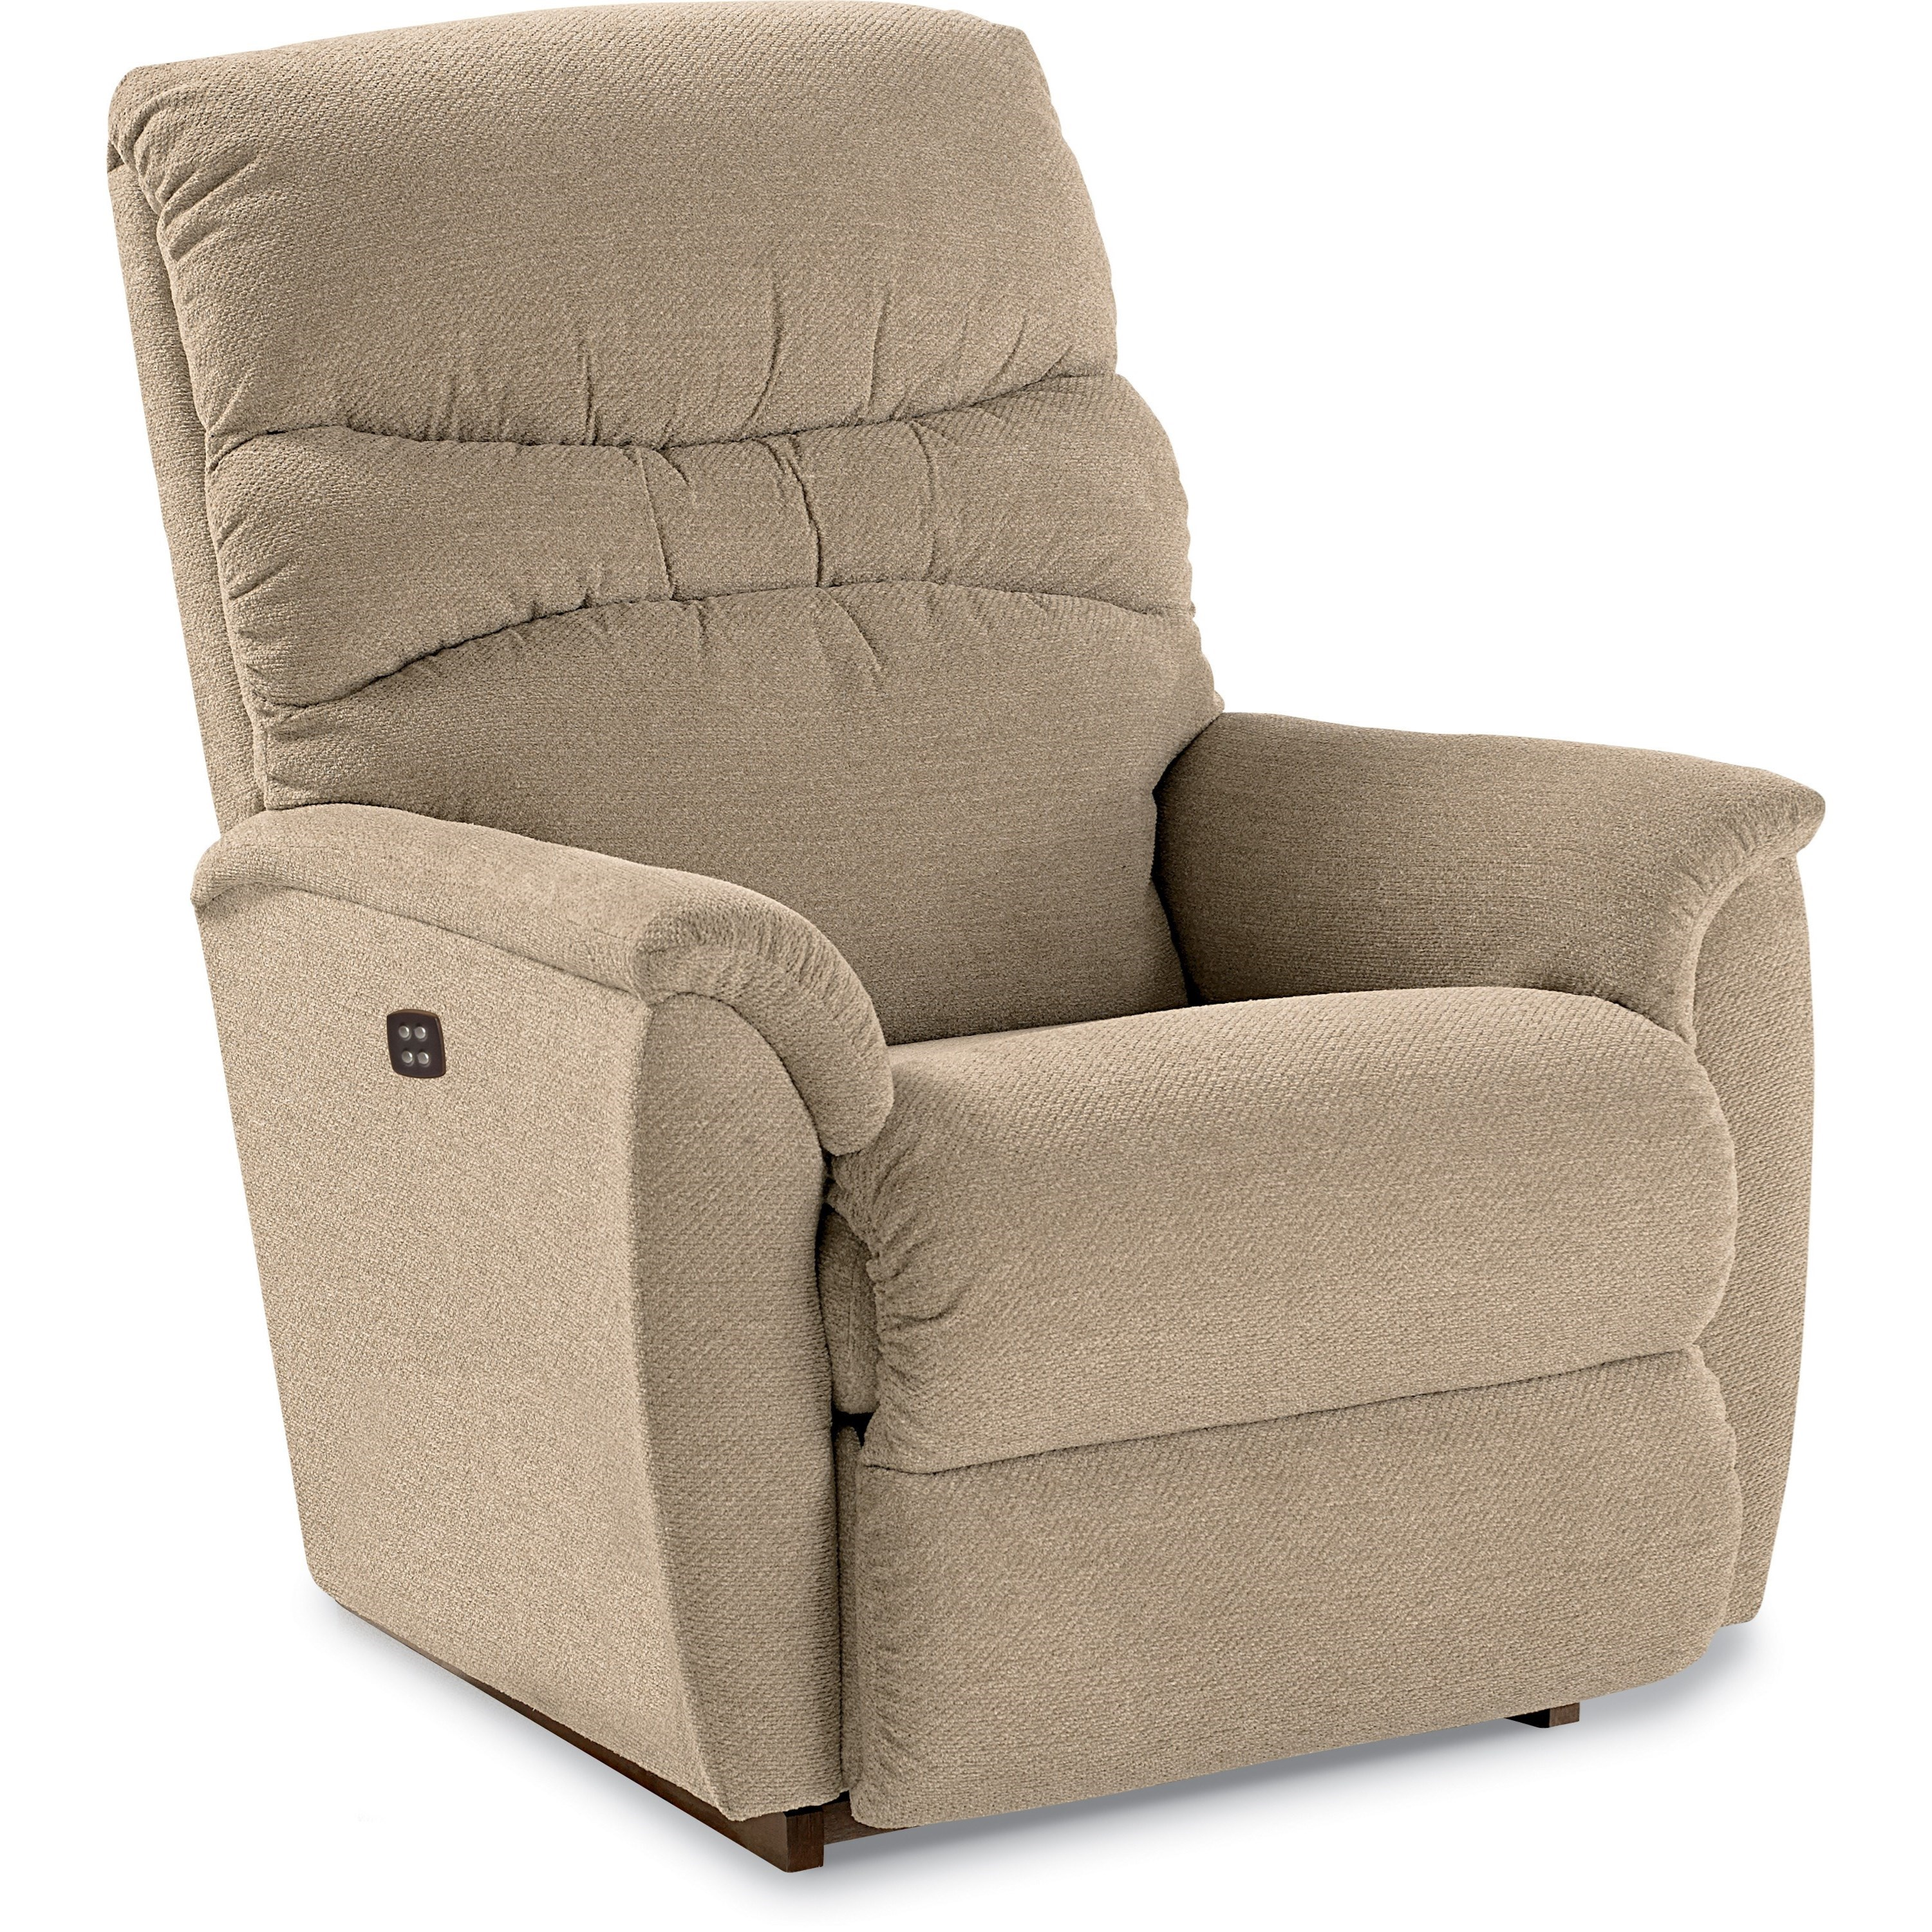 Coleman Power Wall Recliner by La-Z-Boy at Home Furnishings Direct